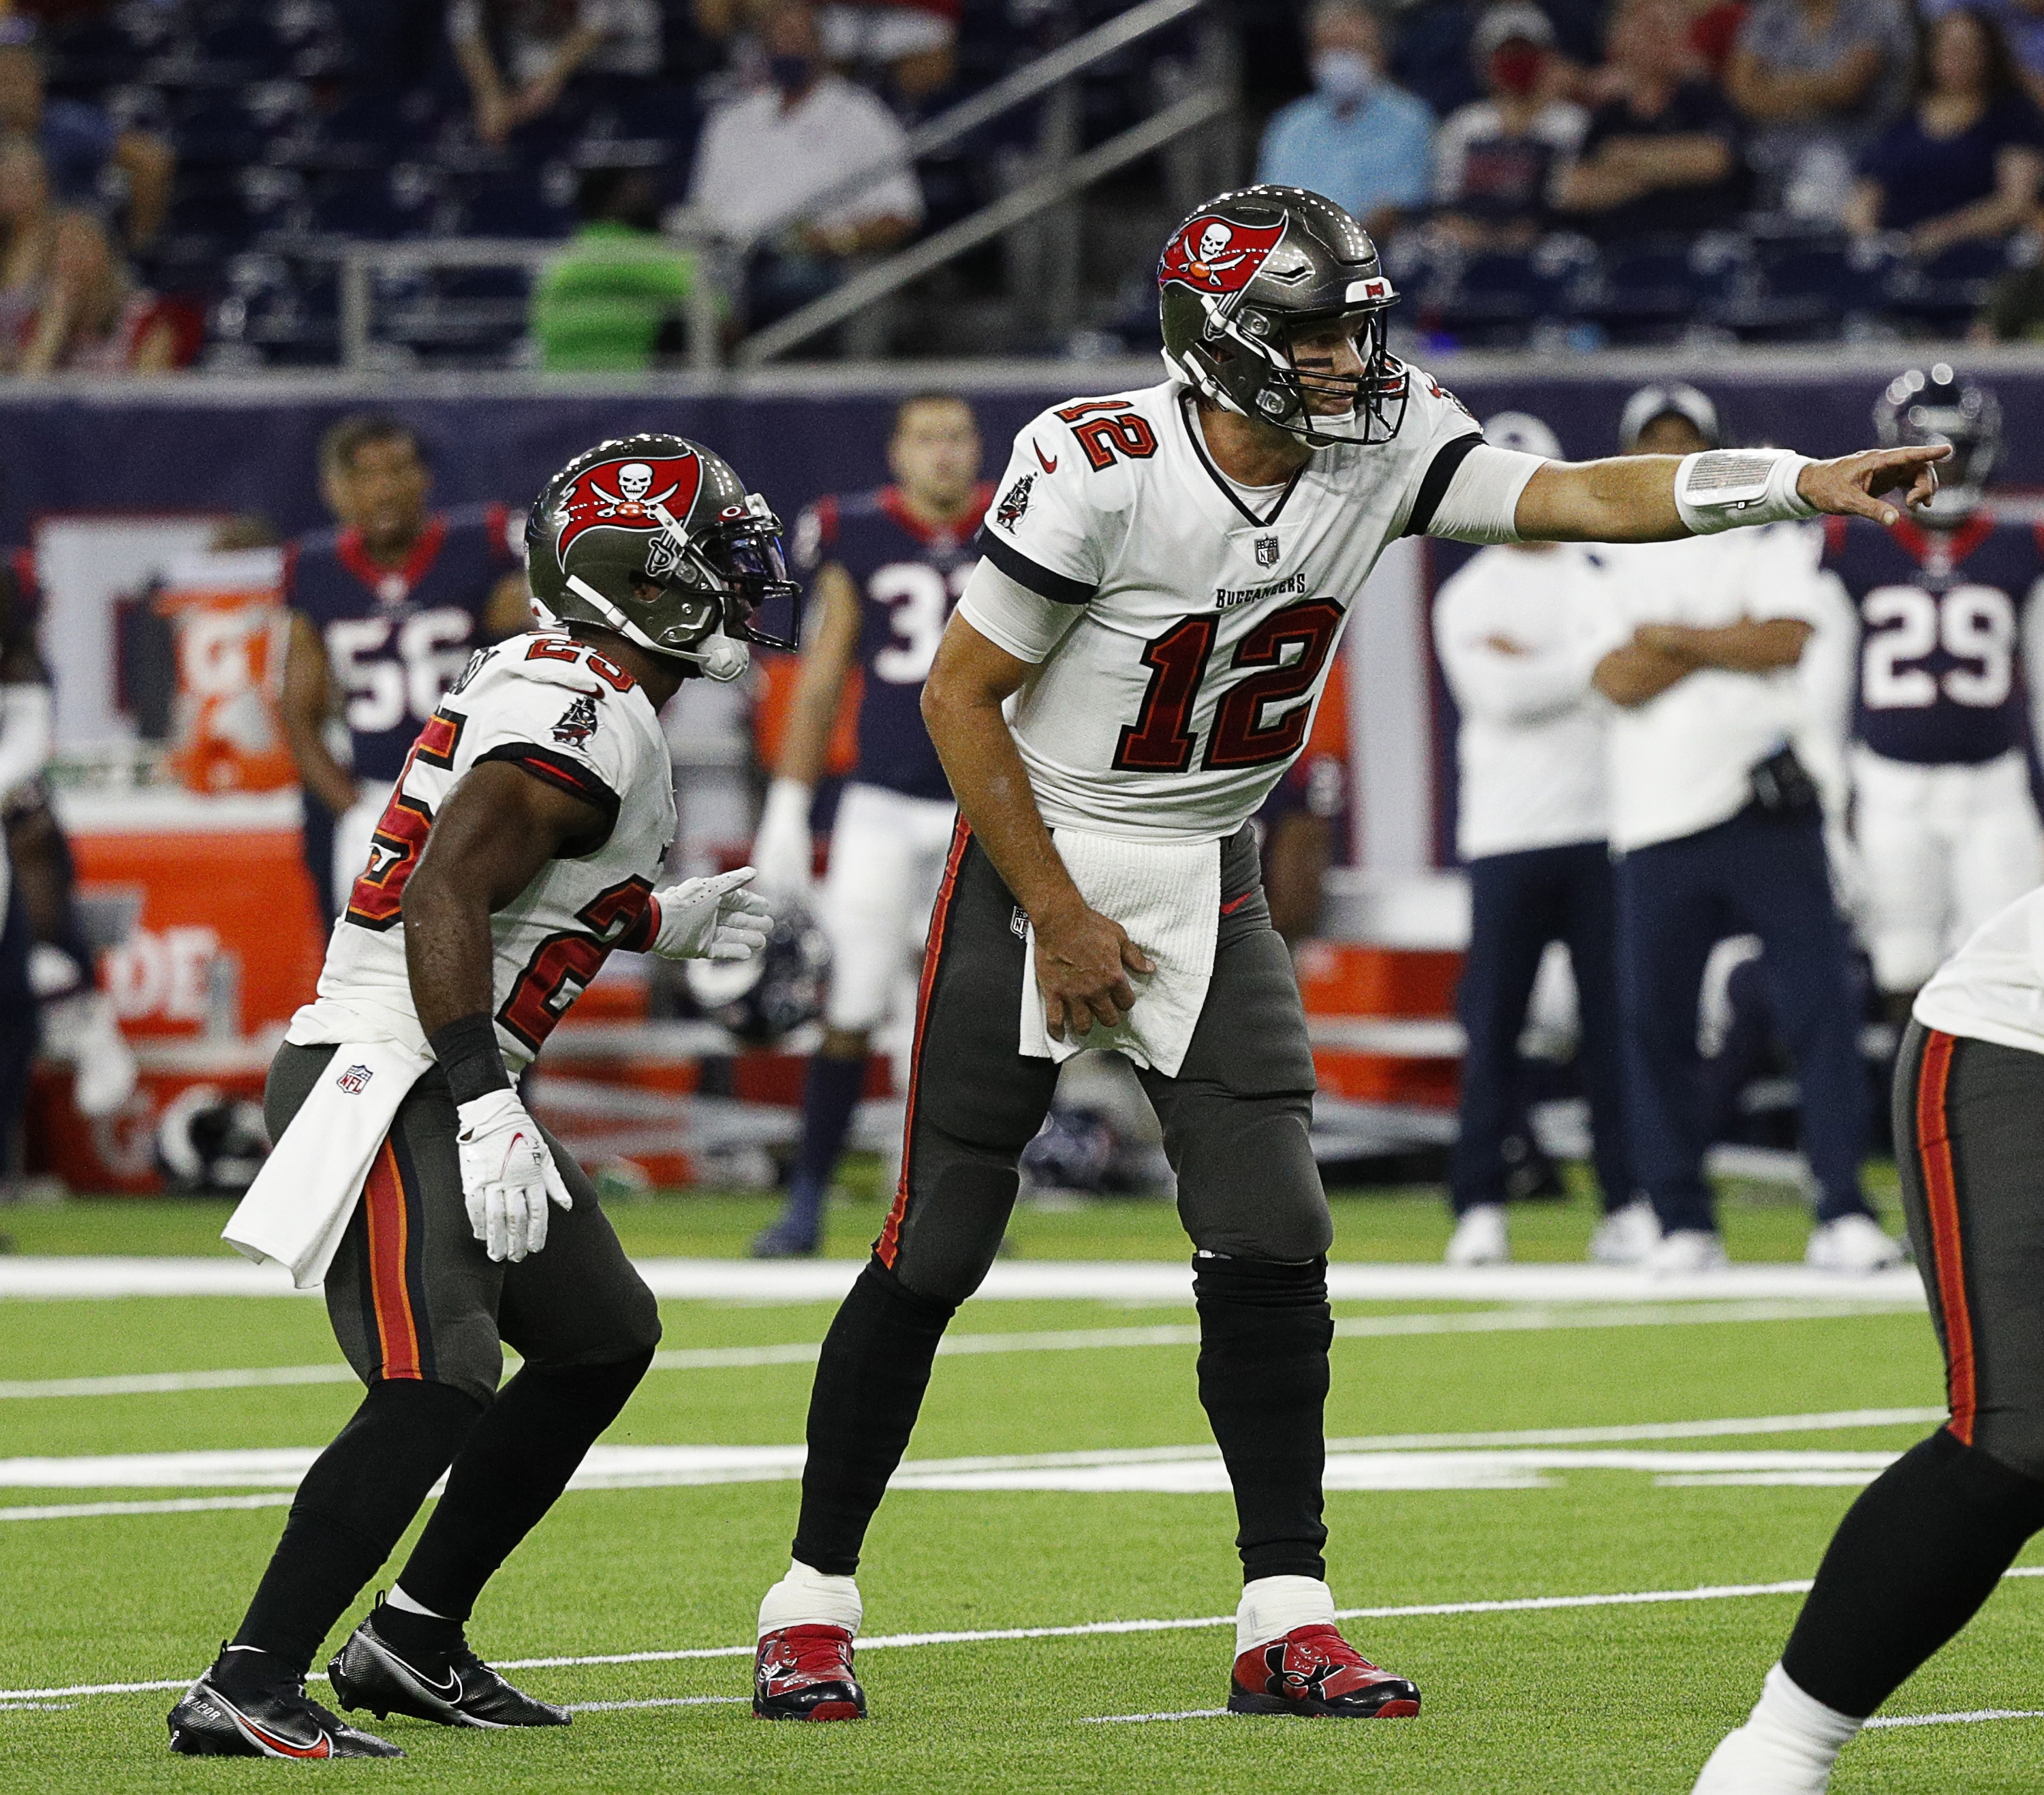 Tom Brady #12 of the Tampa Bay Buccaneers points out the defense as Giovani Bernard #25 goes in motion against the Houston Texans during a NFL preseason game at NRG Stadium on August 28, 2021 in Houston, Texas.